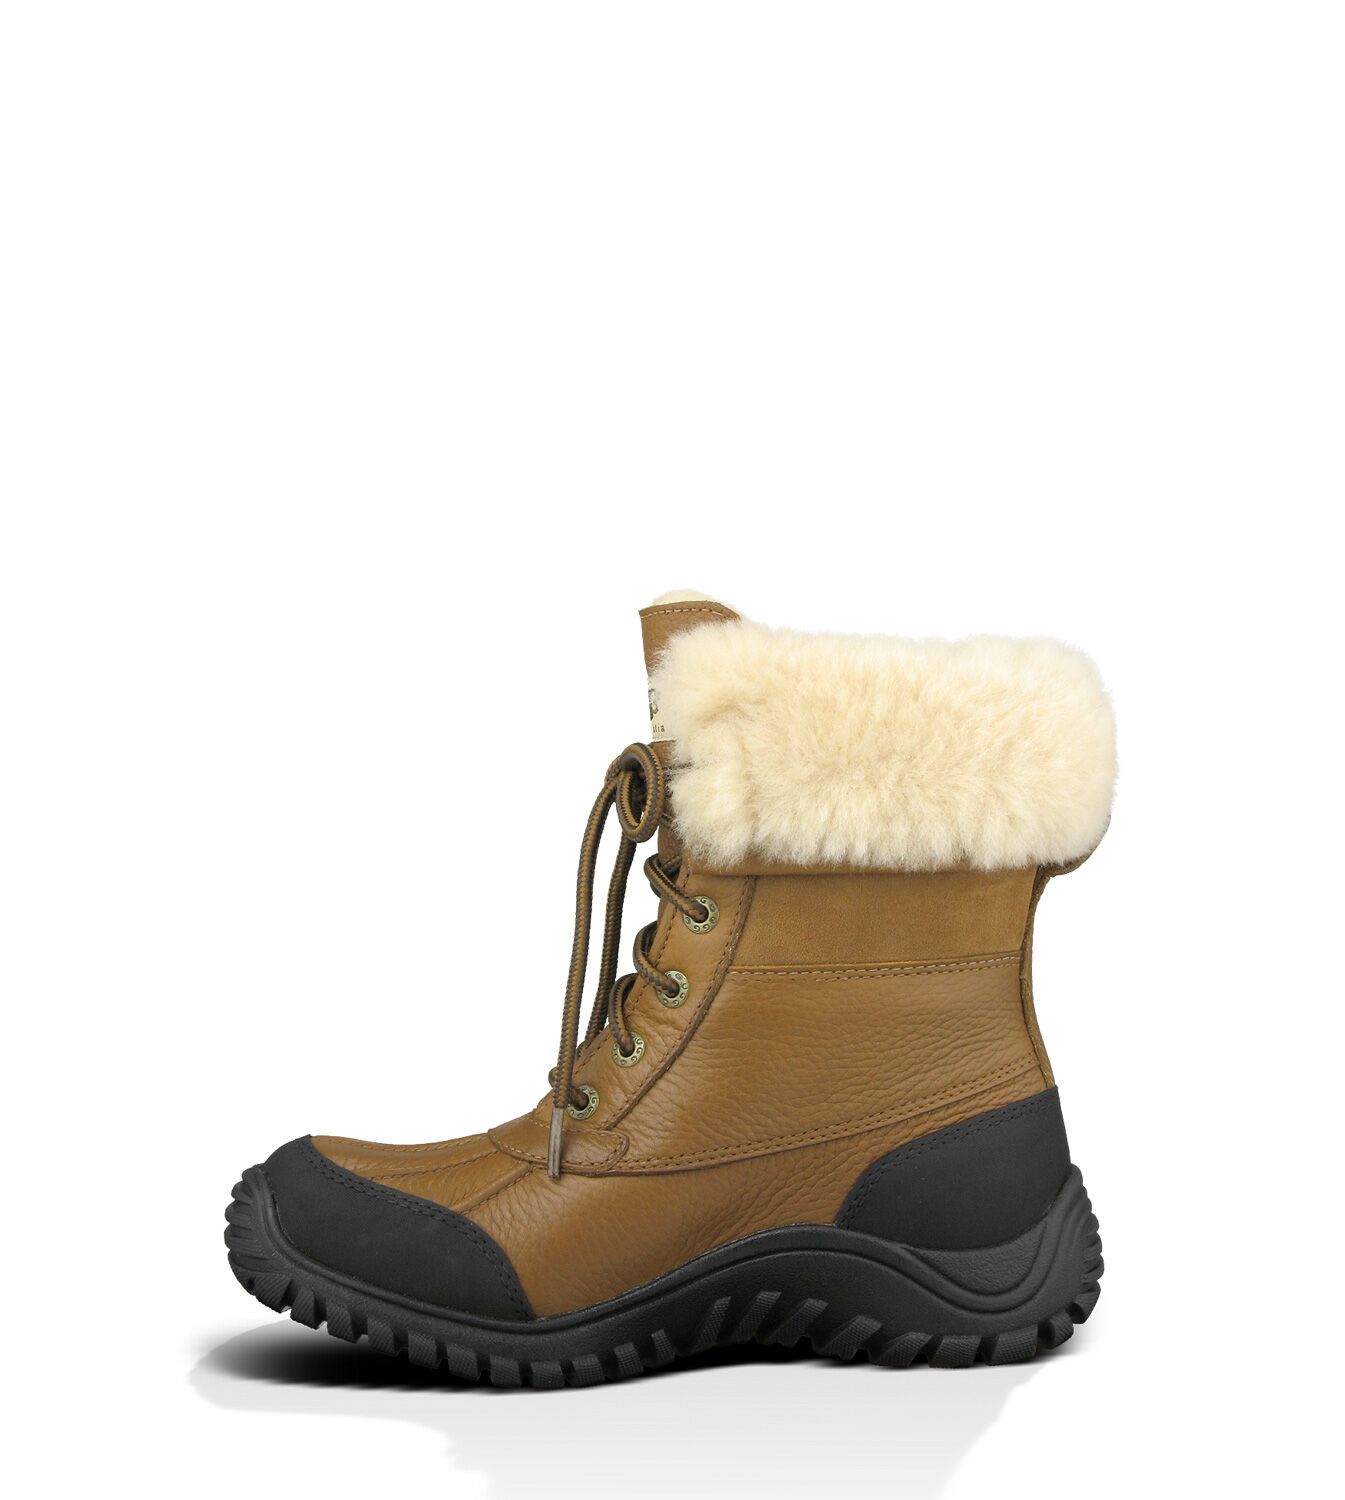 do ugg adirondack boots run big